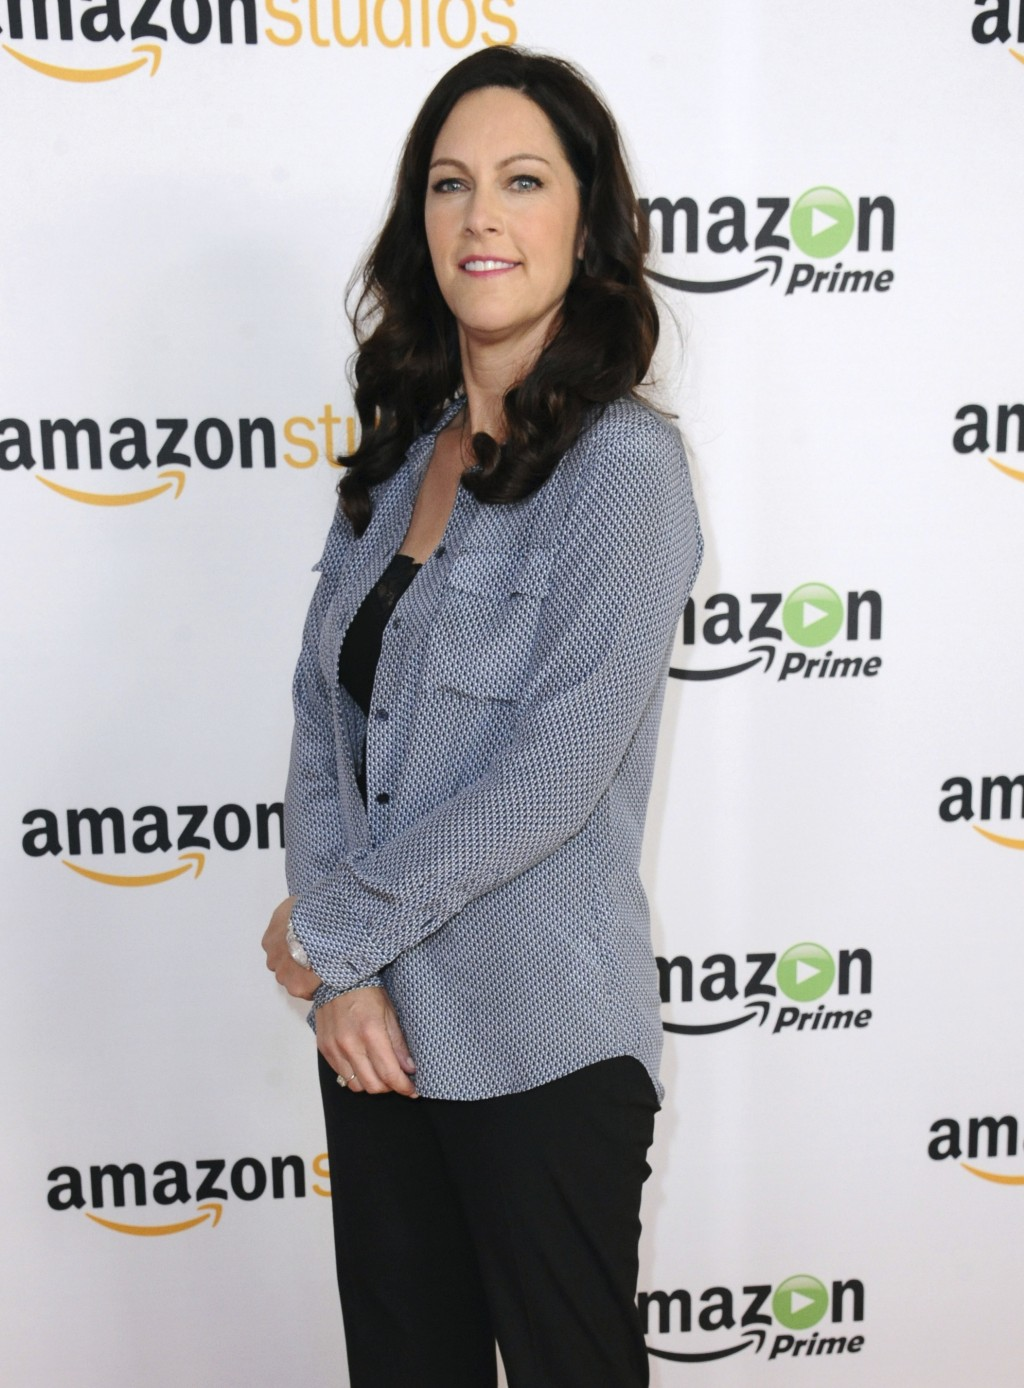 """FILE - In this Aug. 3, 2015 file photo, producer Isa Dick Hackett attends """"The Man in the High Castle"""" photo call at the Amazon Summer TCA Tour at the"""